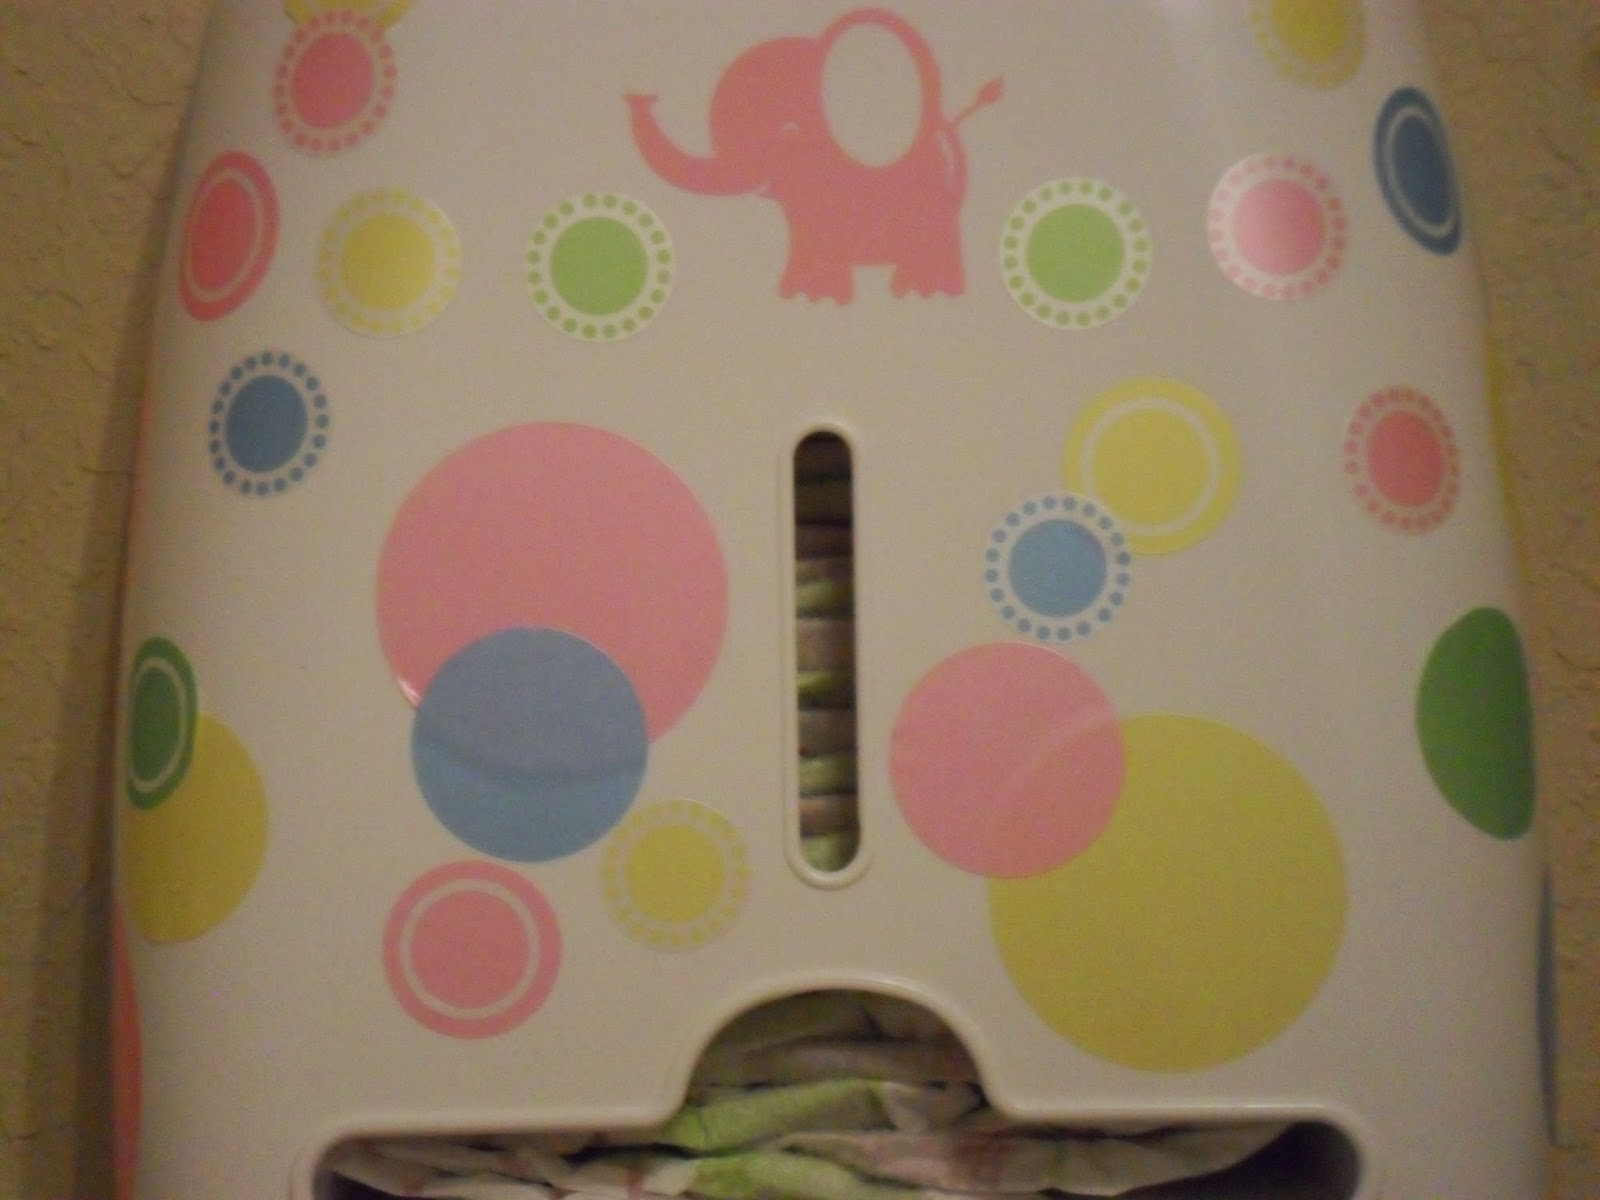 Bobee Diaper Stacker and Wipe dispenser. Review (Blu me away or Pink of me Event)